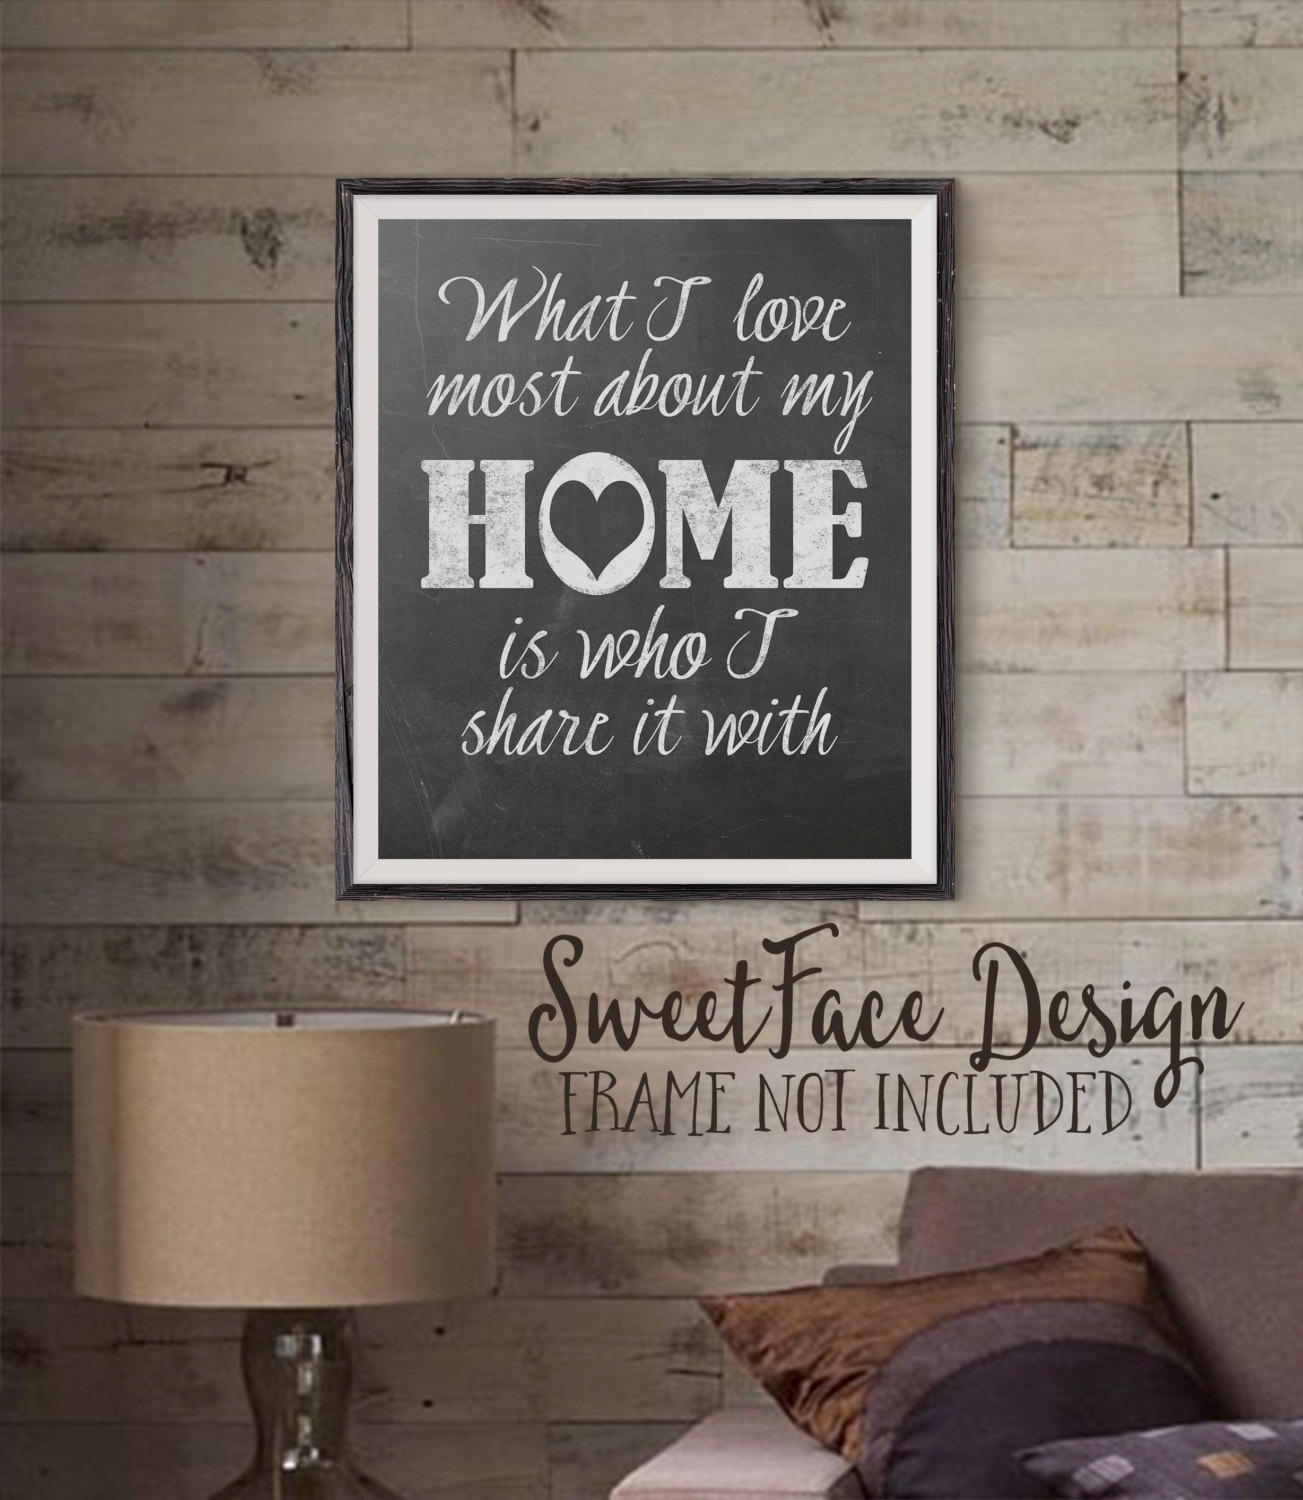 Wall Art Design Ideas: Popular Items Chalkboard Wall Art Square In Most Recently Released Fabric Square Wall Art (View 14 of 15)